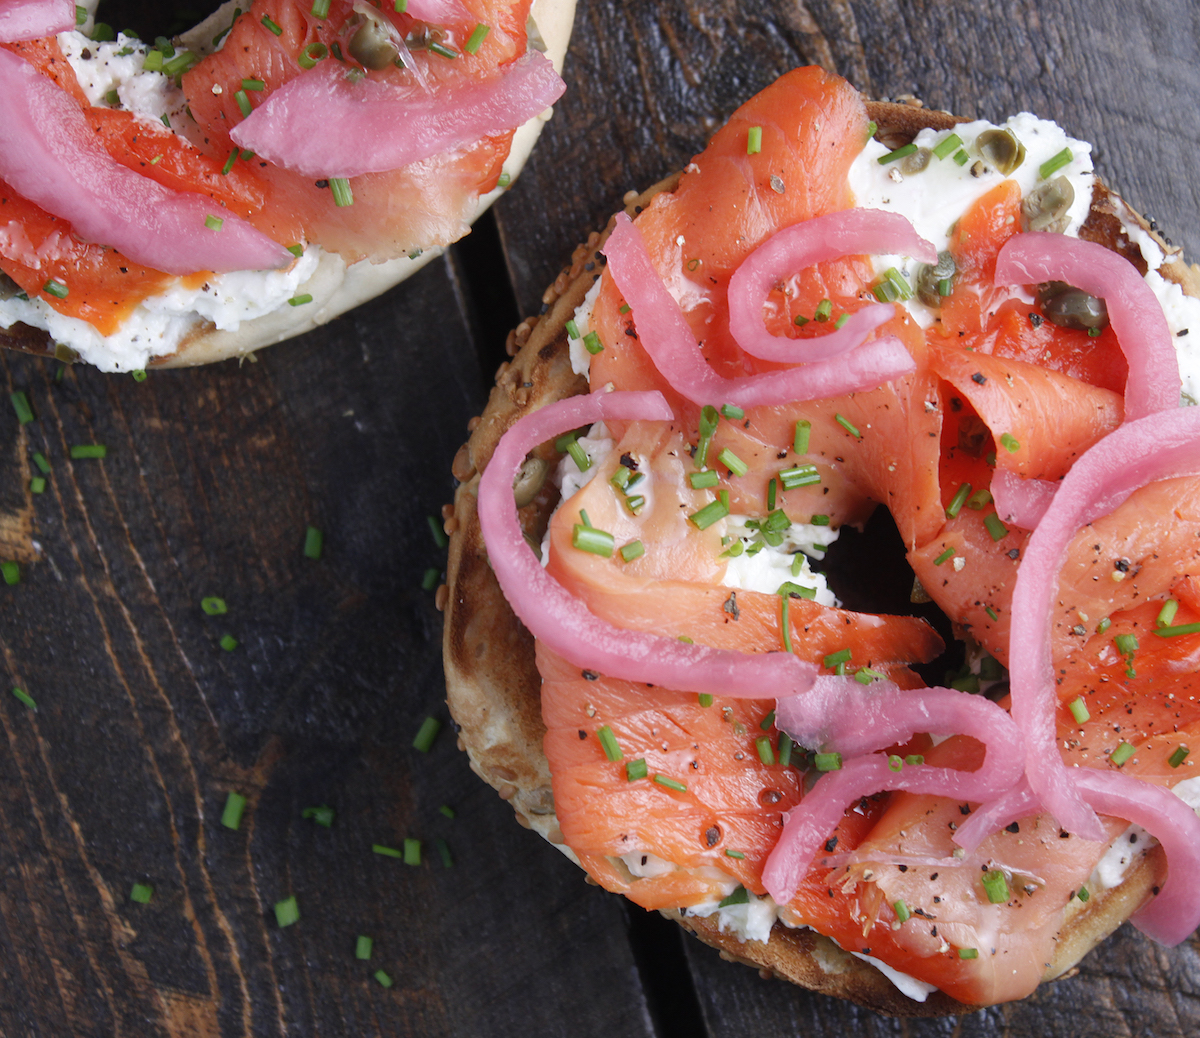 Lox and Bagel made with Haliburton Pickled Red Onions